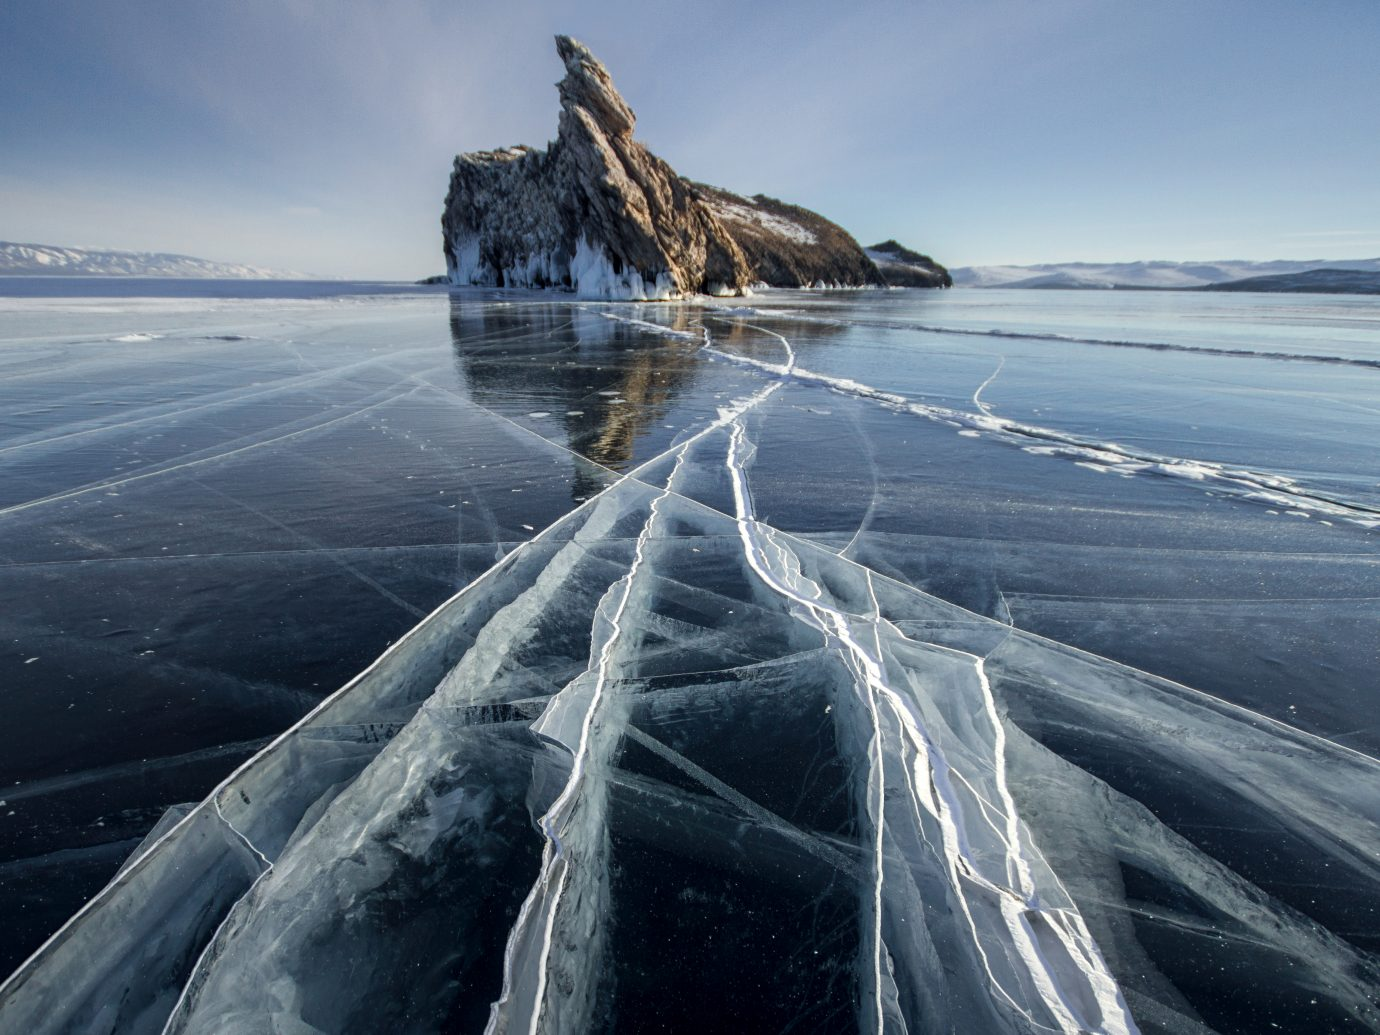 Lake Baikal on a frosty winter day.